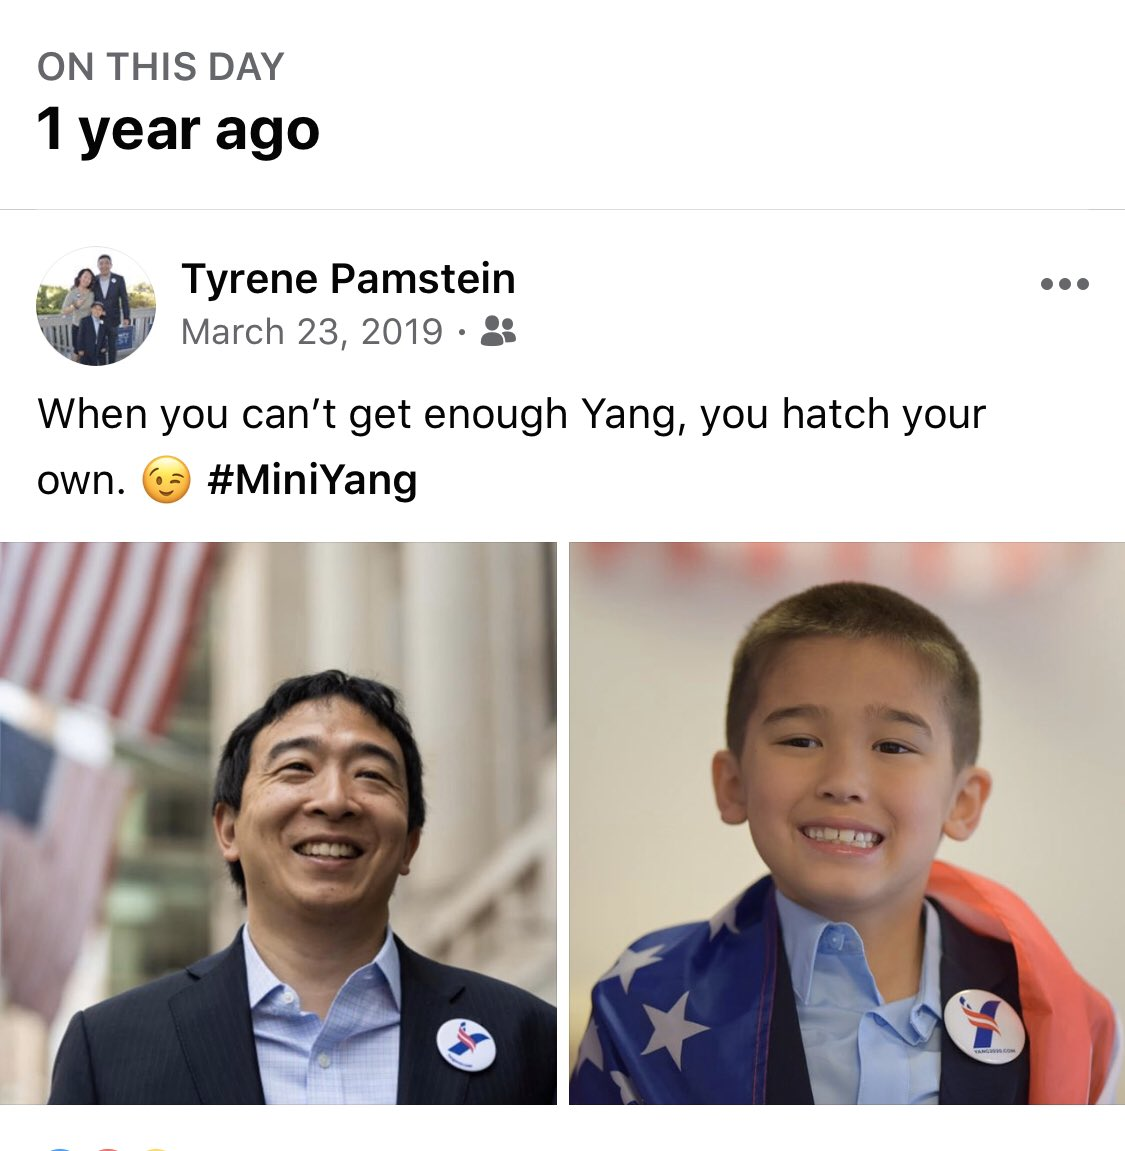 #YangMemory — Anniversary of #MiniYang. 😄 He hadn't met Yang yet but we had watched a lot of videos and read every article that came out — which was only about once a month at that point. He's come a LONG way and is needed now more than ever. #YangGang https://t.co/rNAHbcKtzR